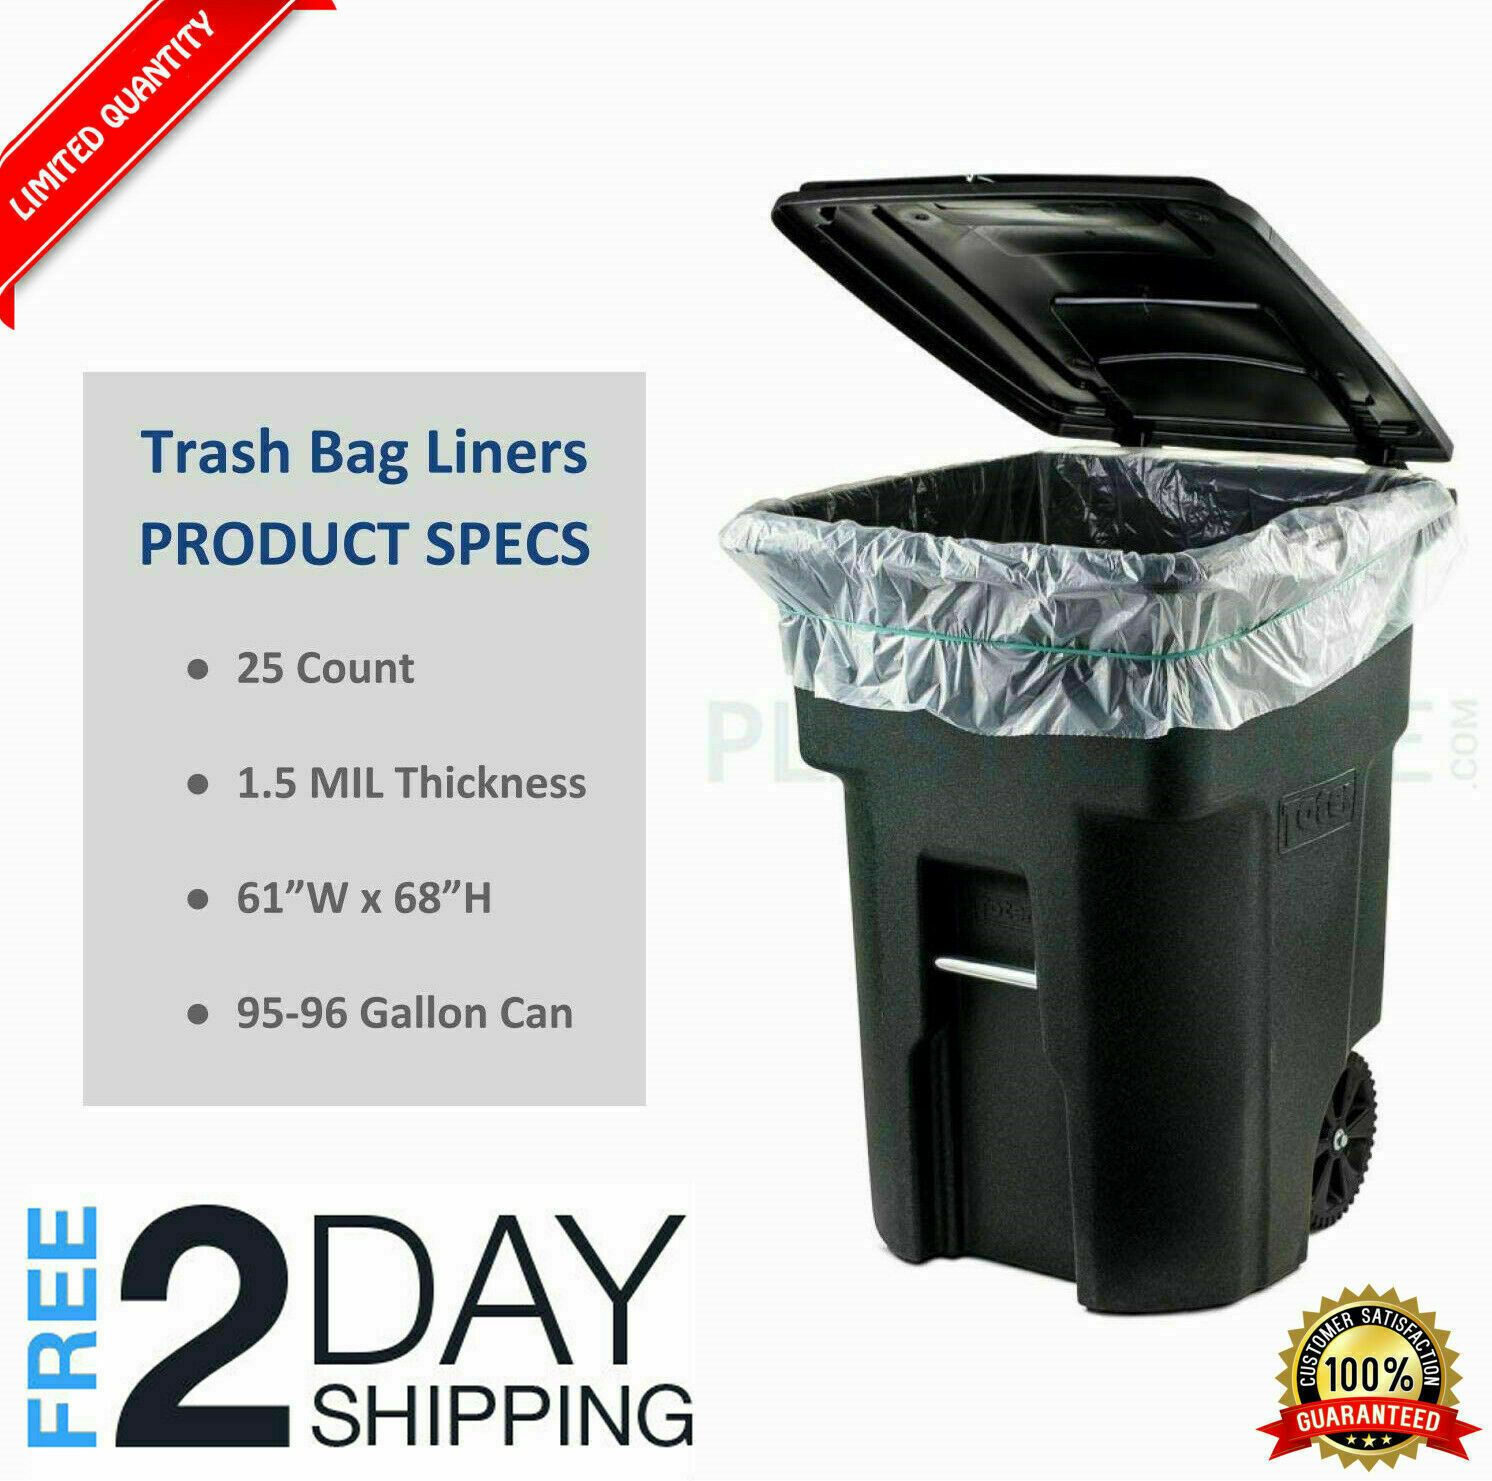 96 Gallon Wheeled Trash Can Liners Lid Garbage Container Outdoor Waste 25 Count Trash Cans Ideas Of Trash Cans Trashca Garbage Containers Trash Can Trash